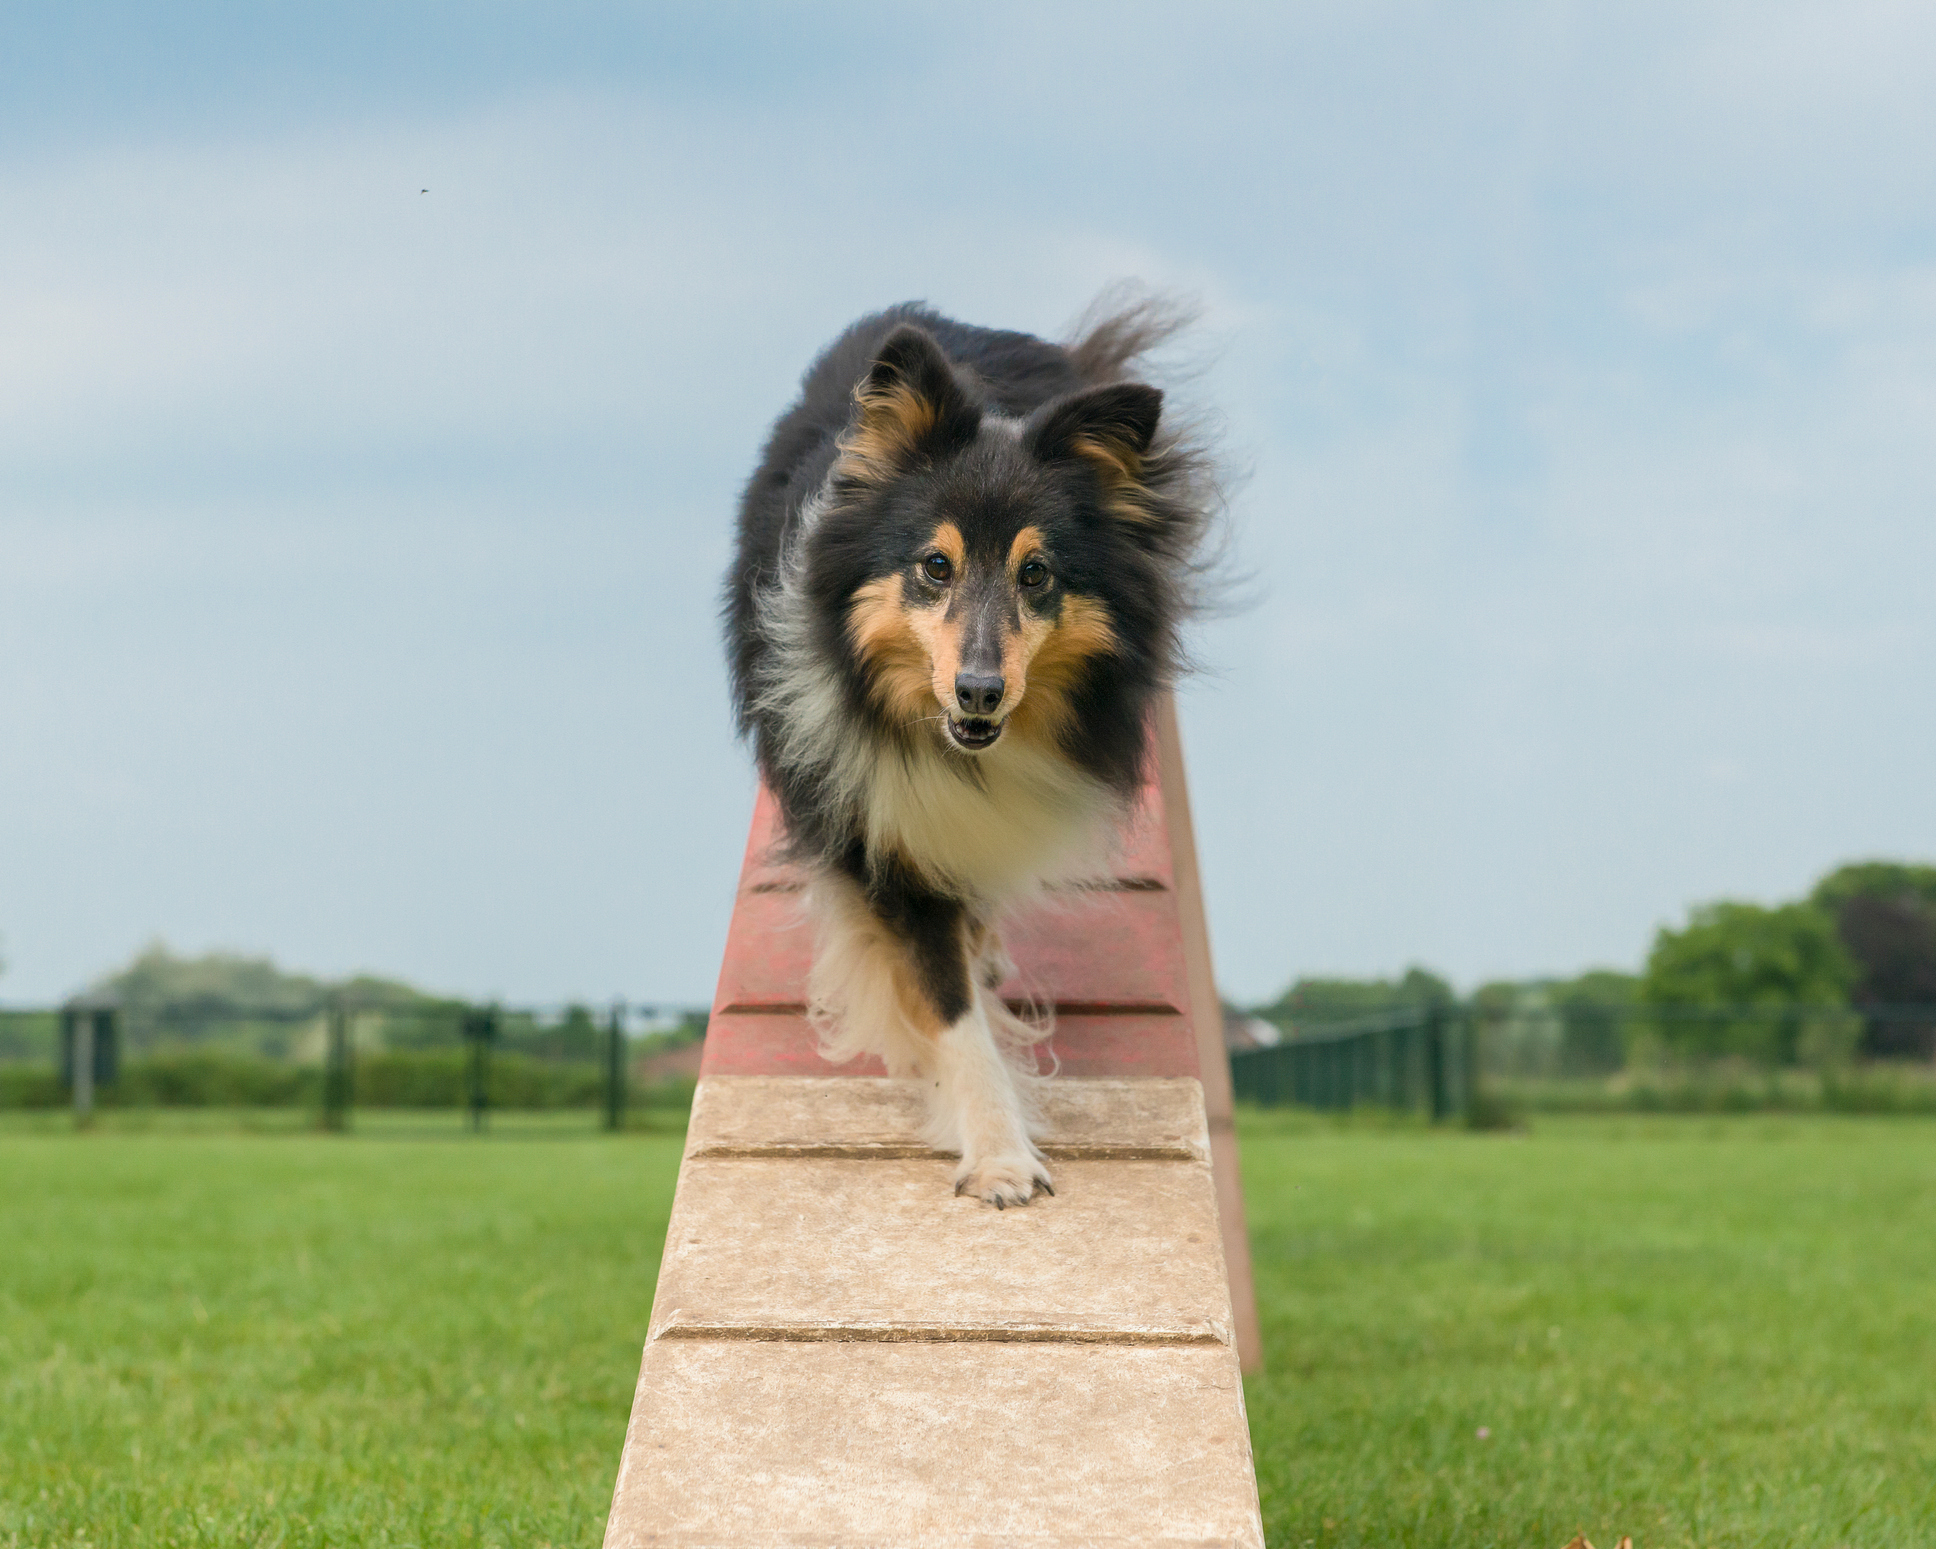 A breed of herding dog with a calm and responsive demeanor.